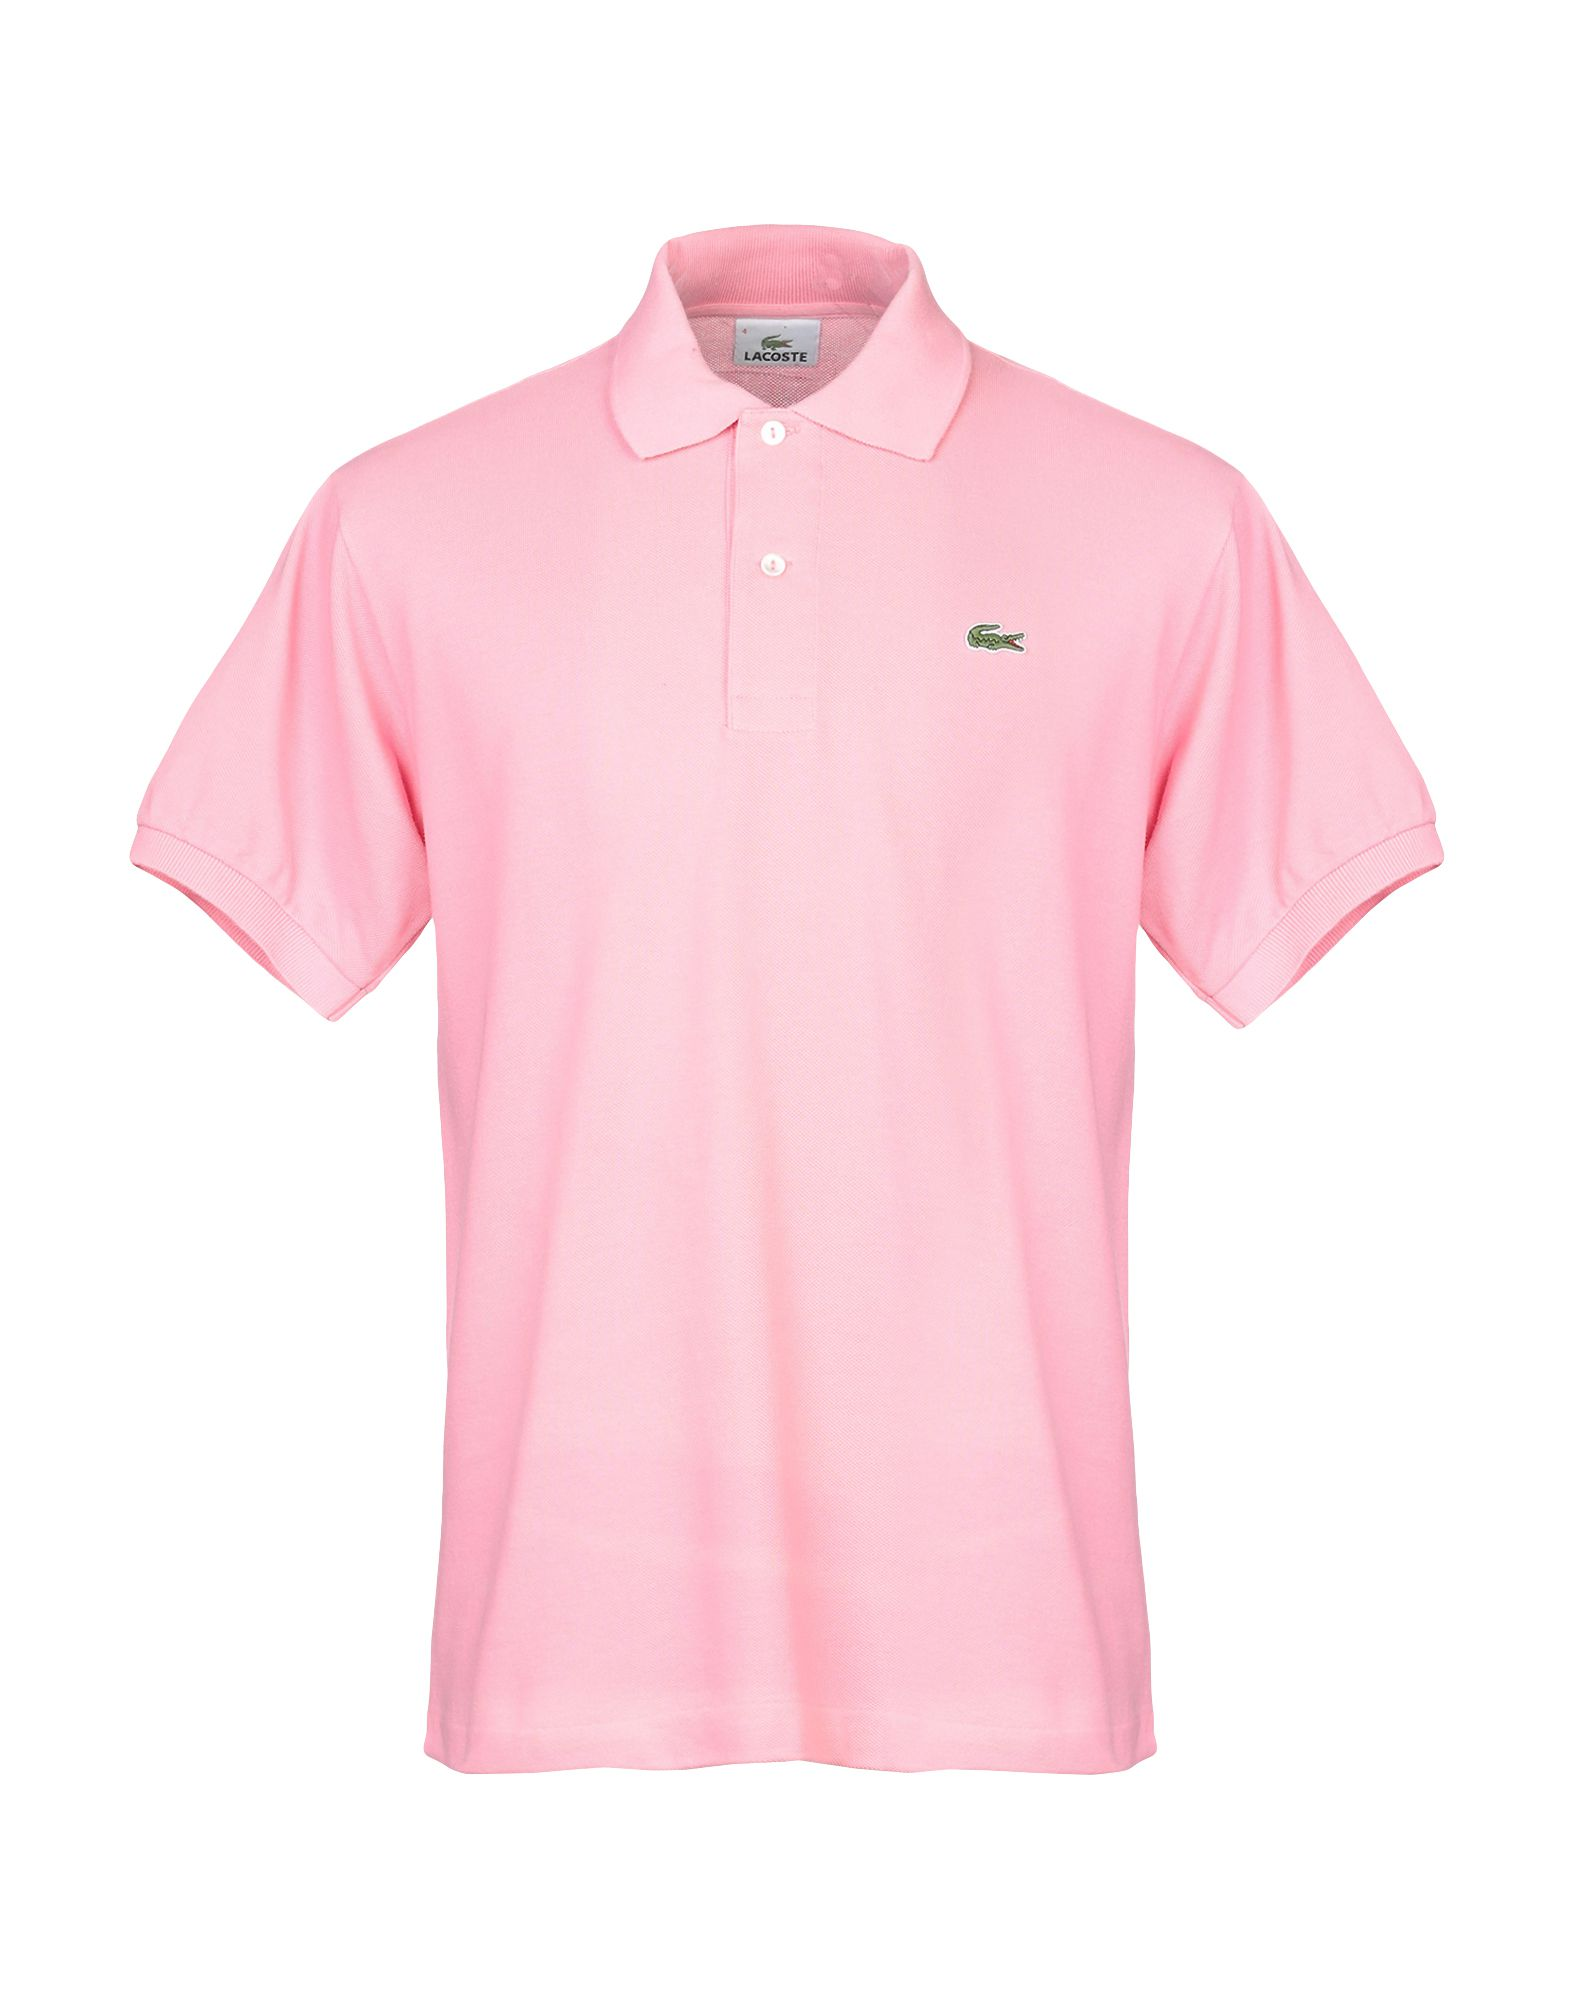 f6261080ae7 Lacoste Polo Shirts Cost – EDGE Engineering and Consulting Limited